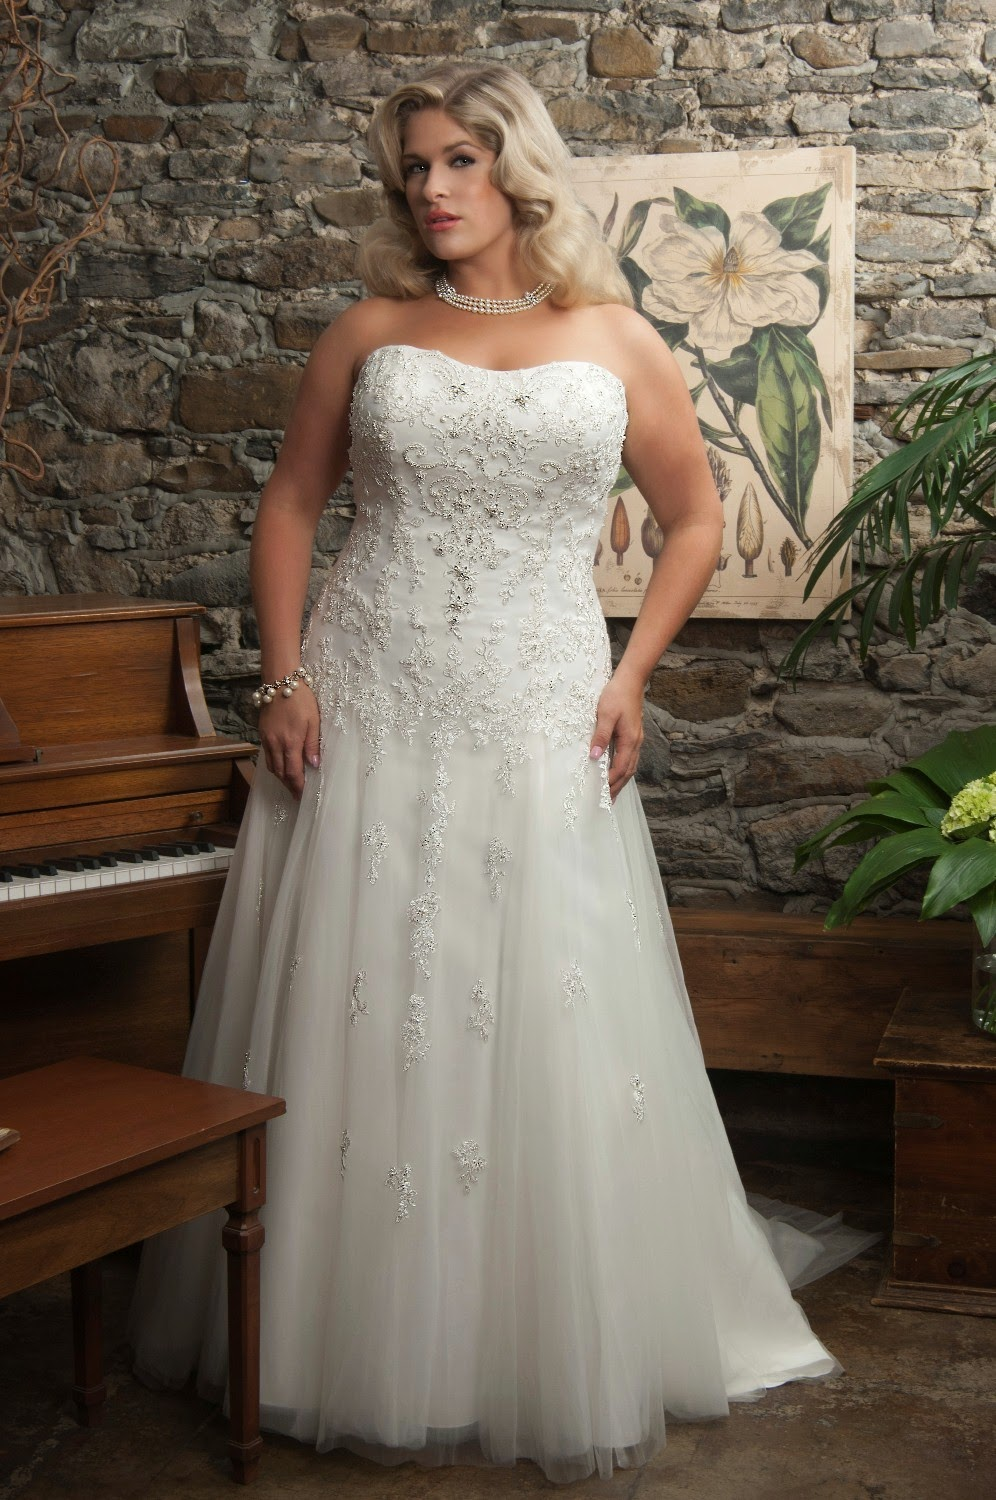 Plus Size A line Wedding Gown; Simple A line Wedding Gown; A Line Wedding Dresses Ideas; wedding dresses; wedding gown; simple wedding dresses; simple wedding gown; a line wedding dresses; a line wedding gown; a line wedding dress